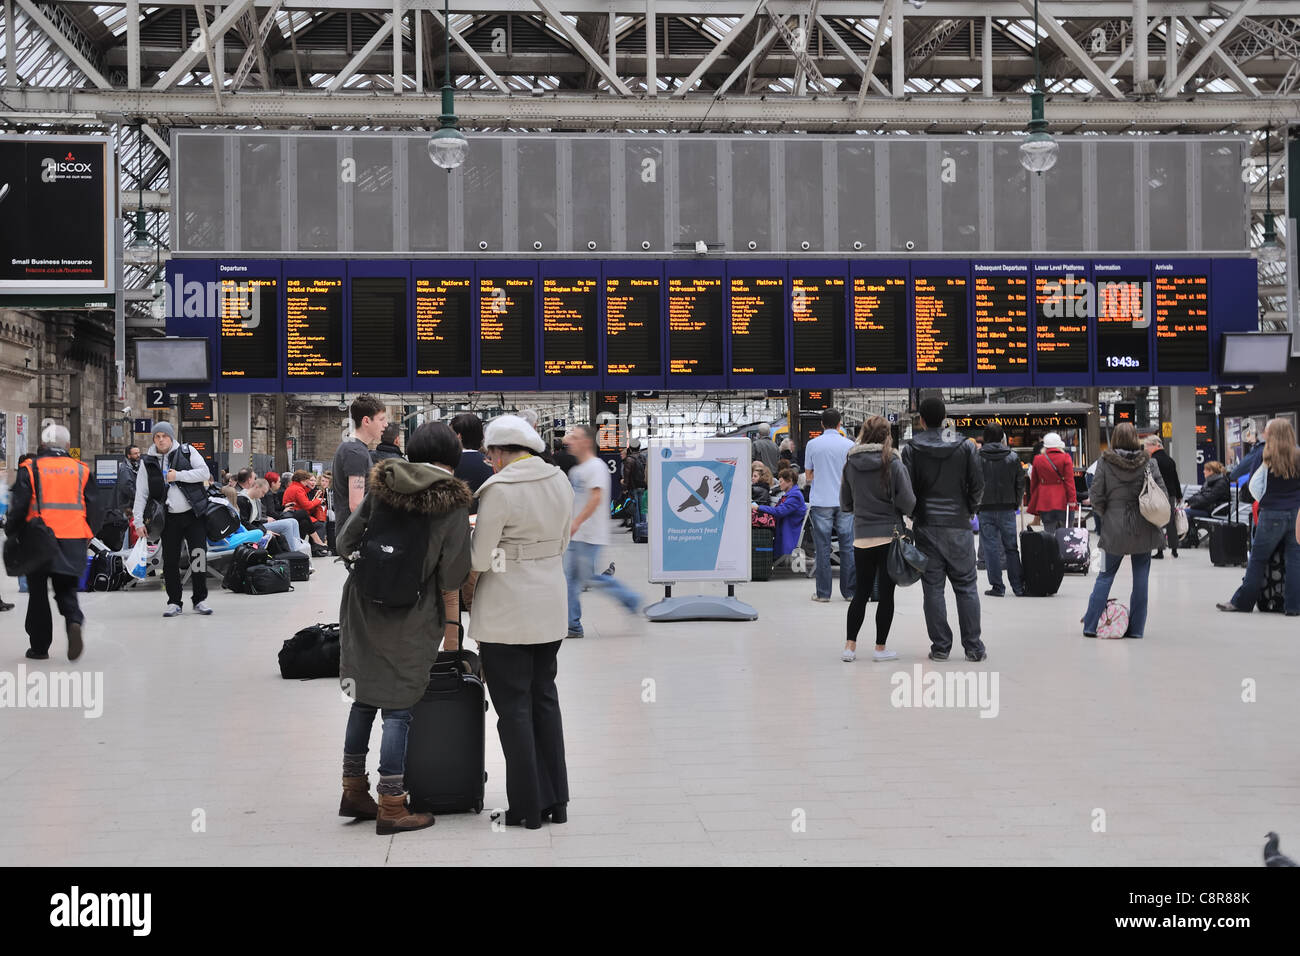 Train arrival and departure board of the Glasgow Central station - Stock Image